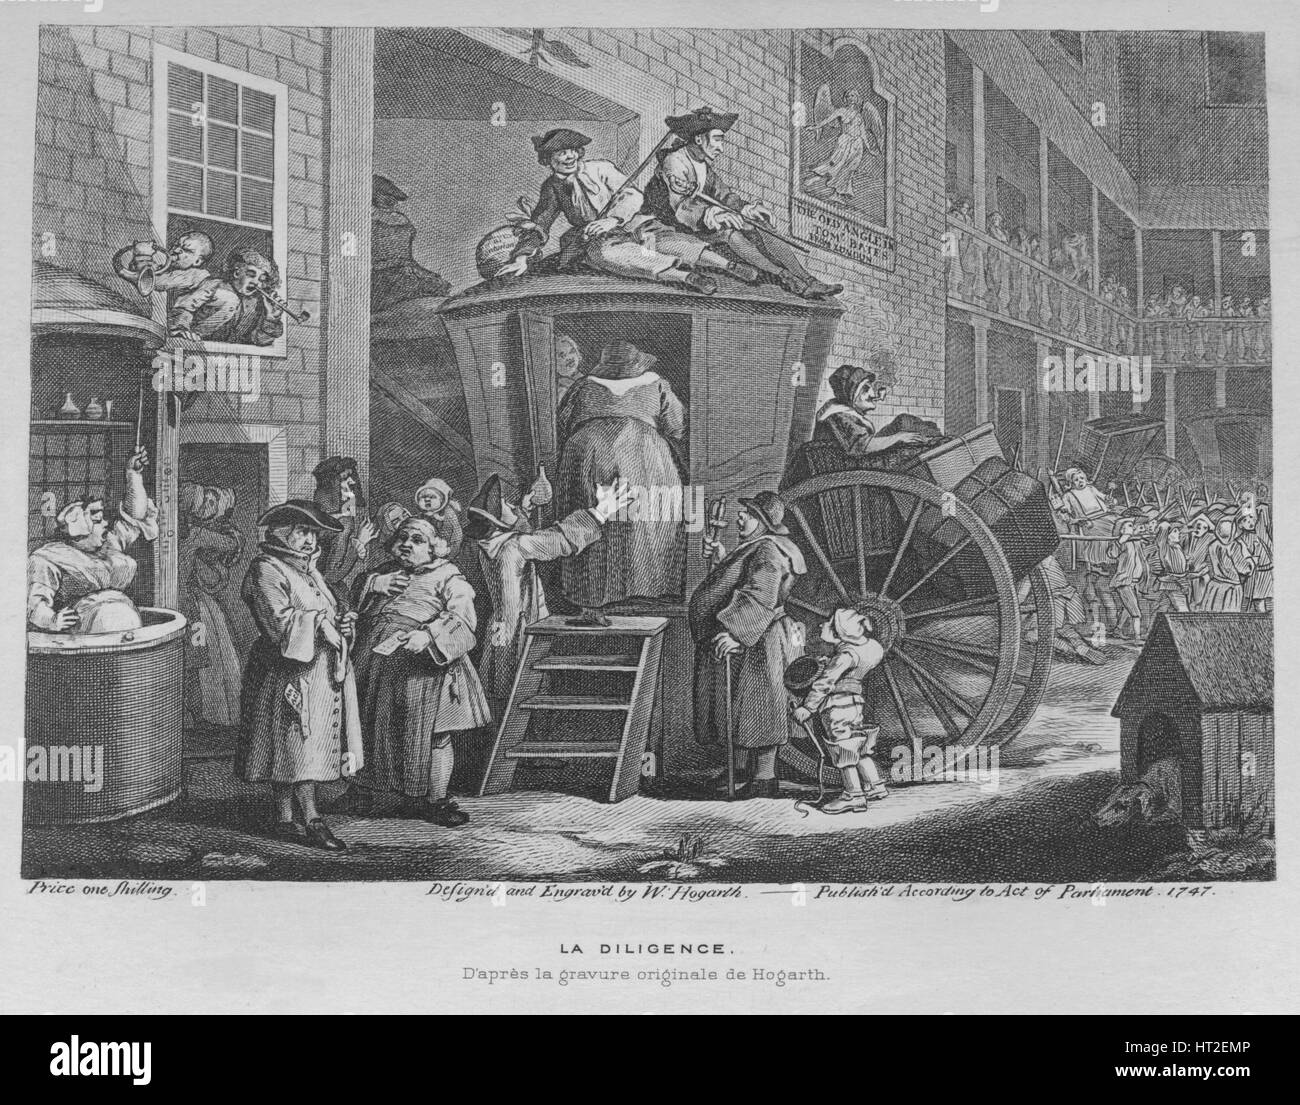 'The Stage Coach or Country Inn Yard', 1747. Artist: William Hogarth.